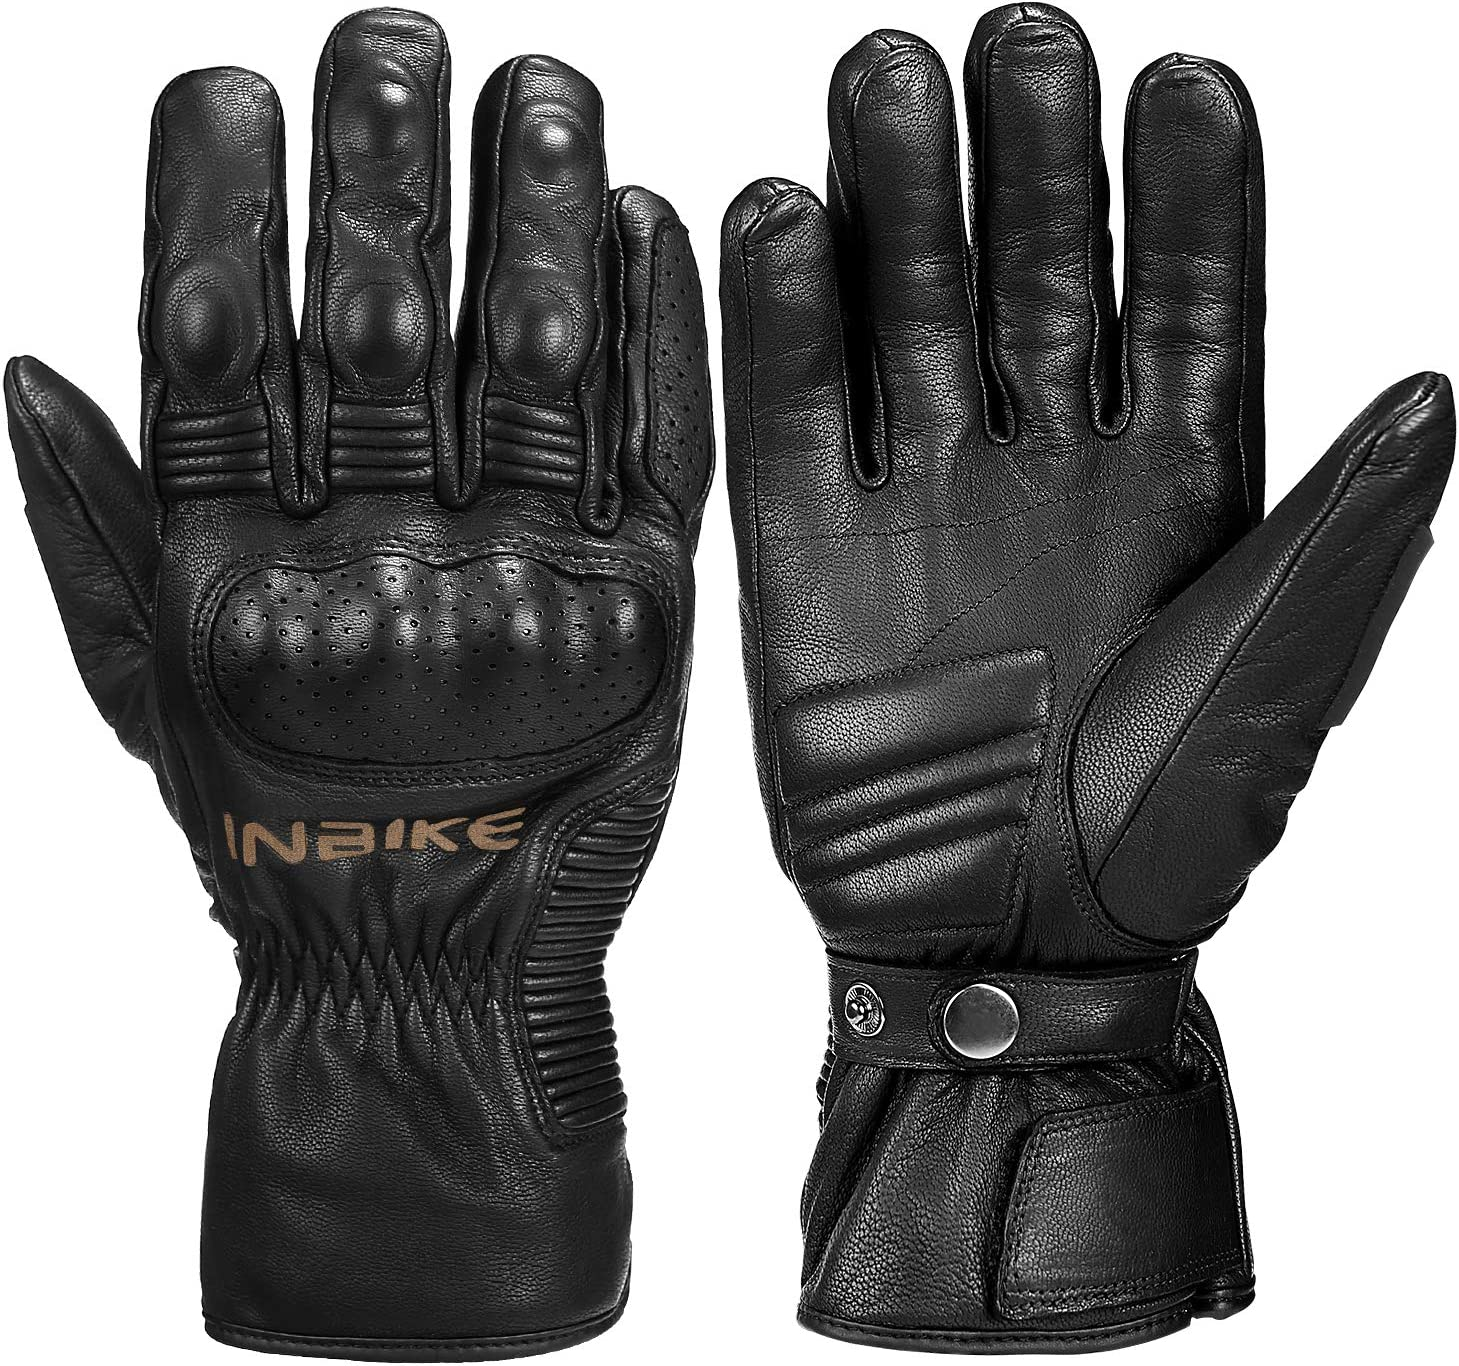 INBIKE Winter Motorcycle Gloves cold weather Thermal Leather Full Finger Motorbike Gloves Black Small